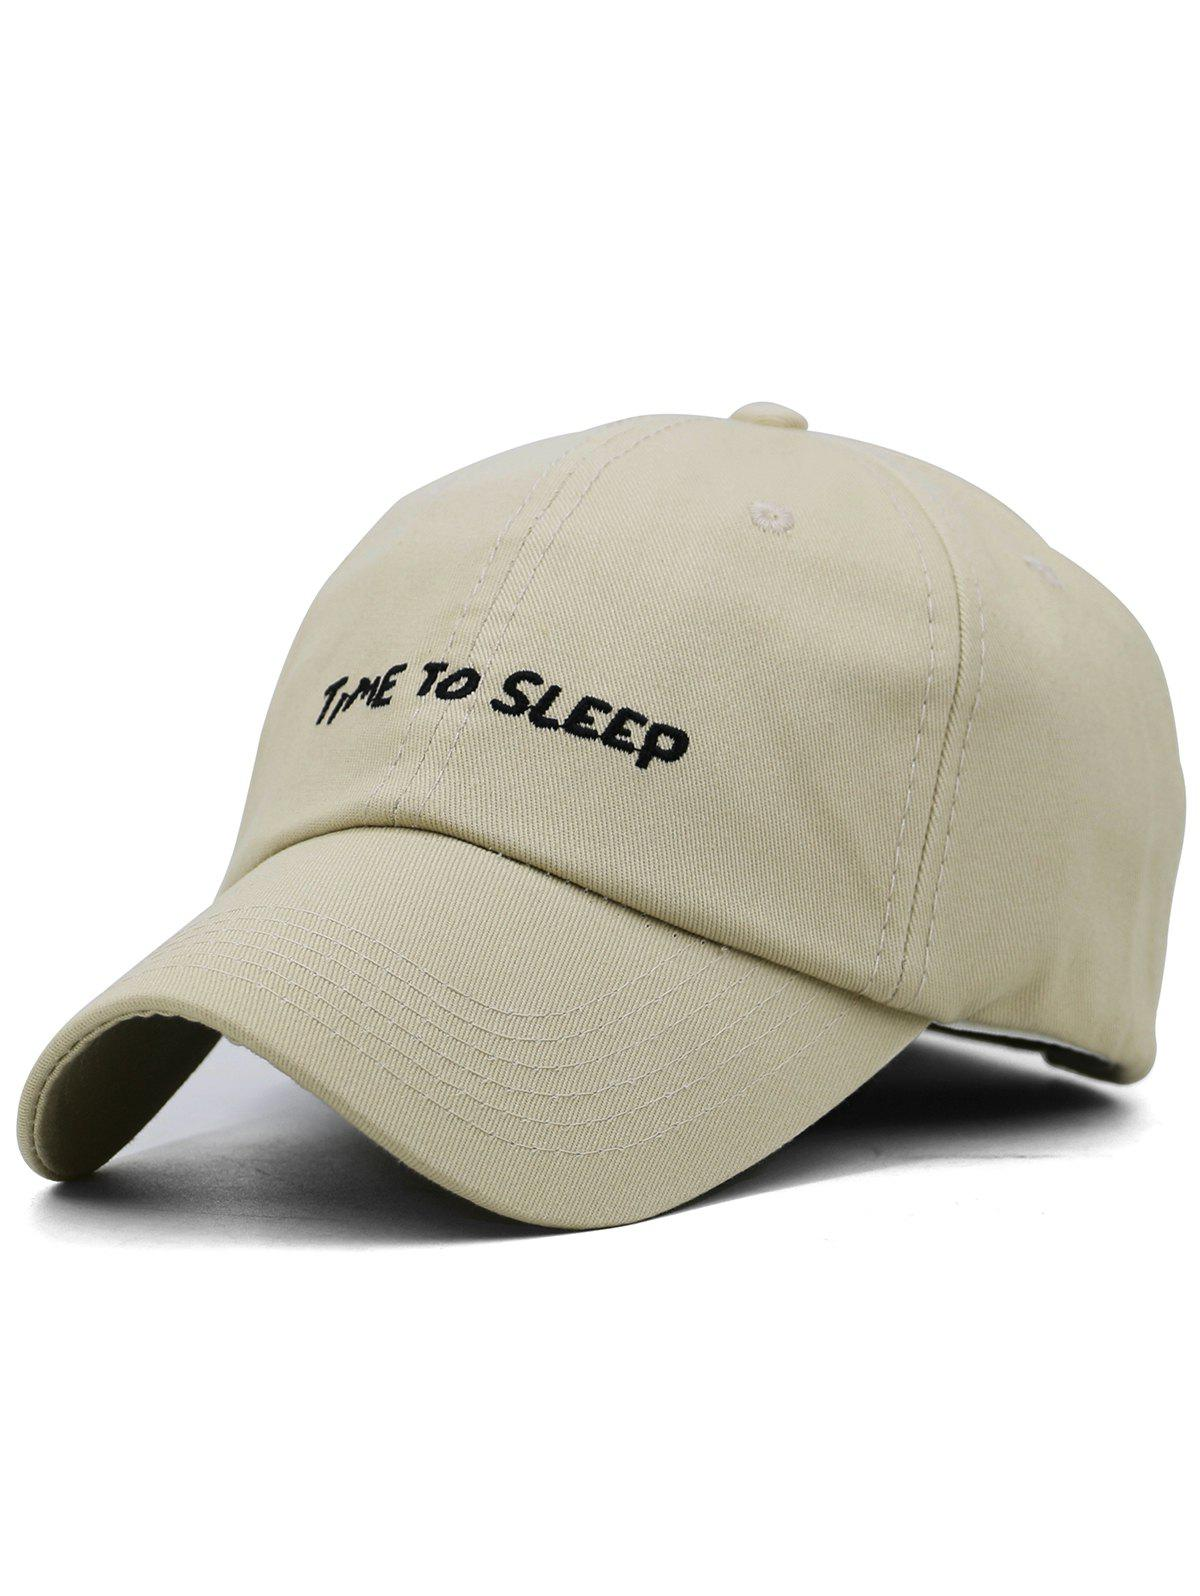 Discount Time To Sleep Embroidery Adjustable Graphic Hat